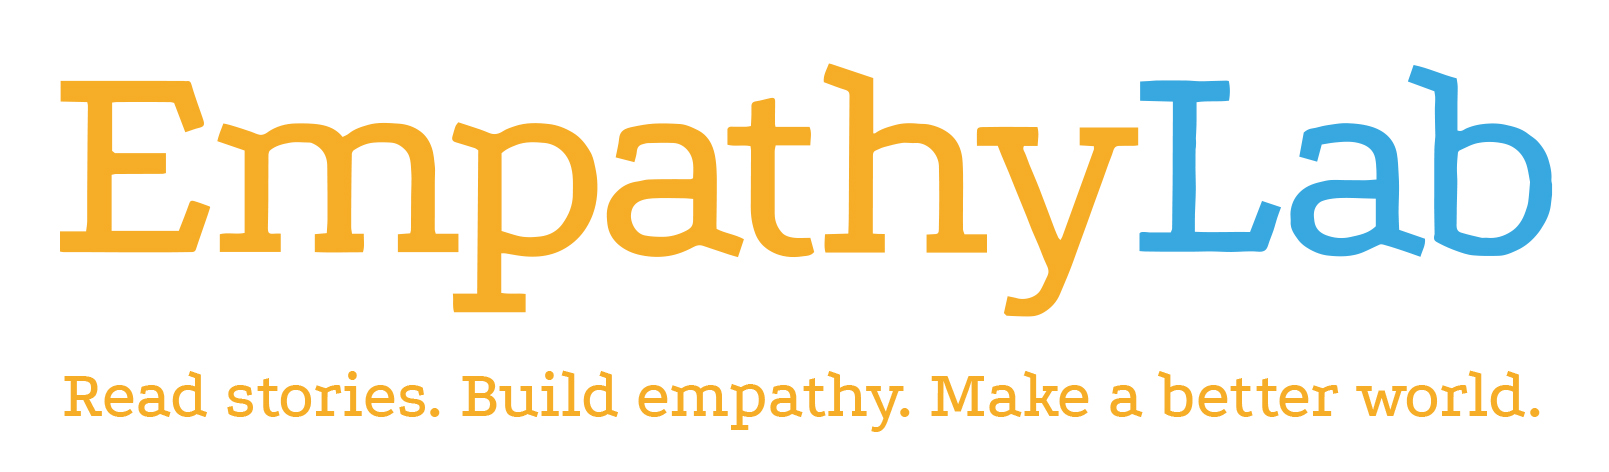 Secondary Read for Empathy collection 2021